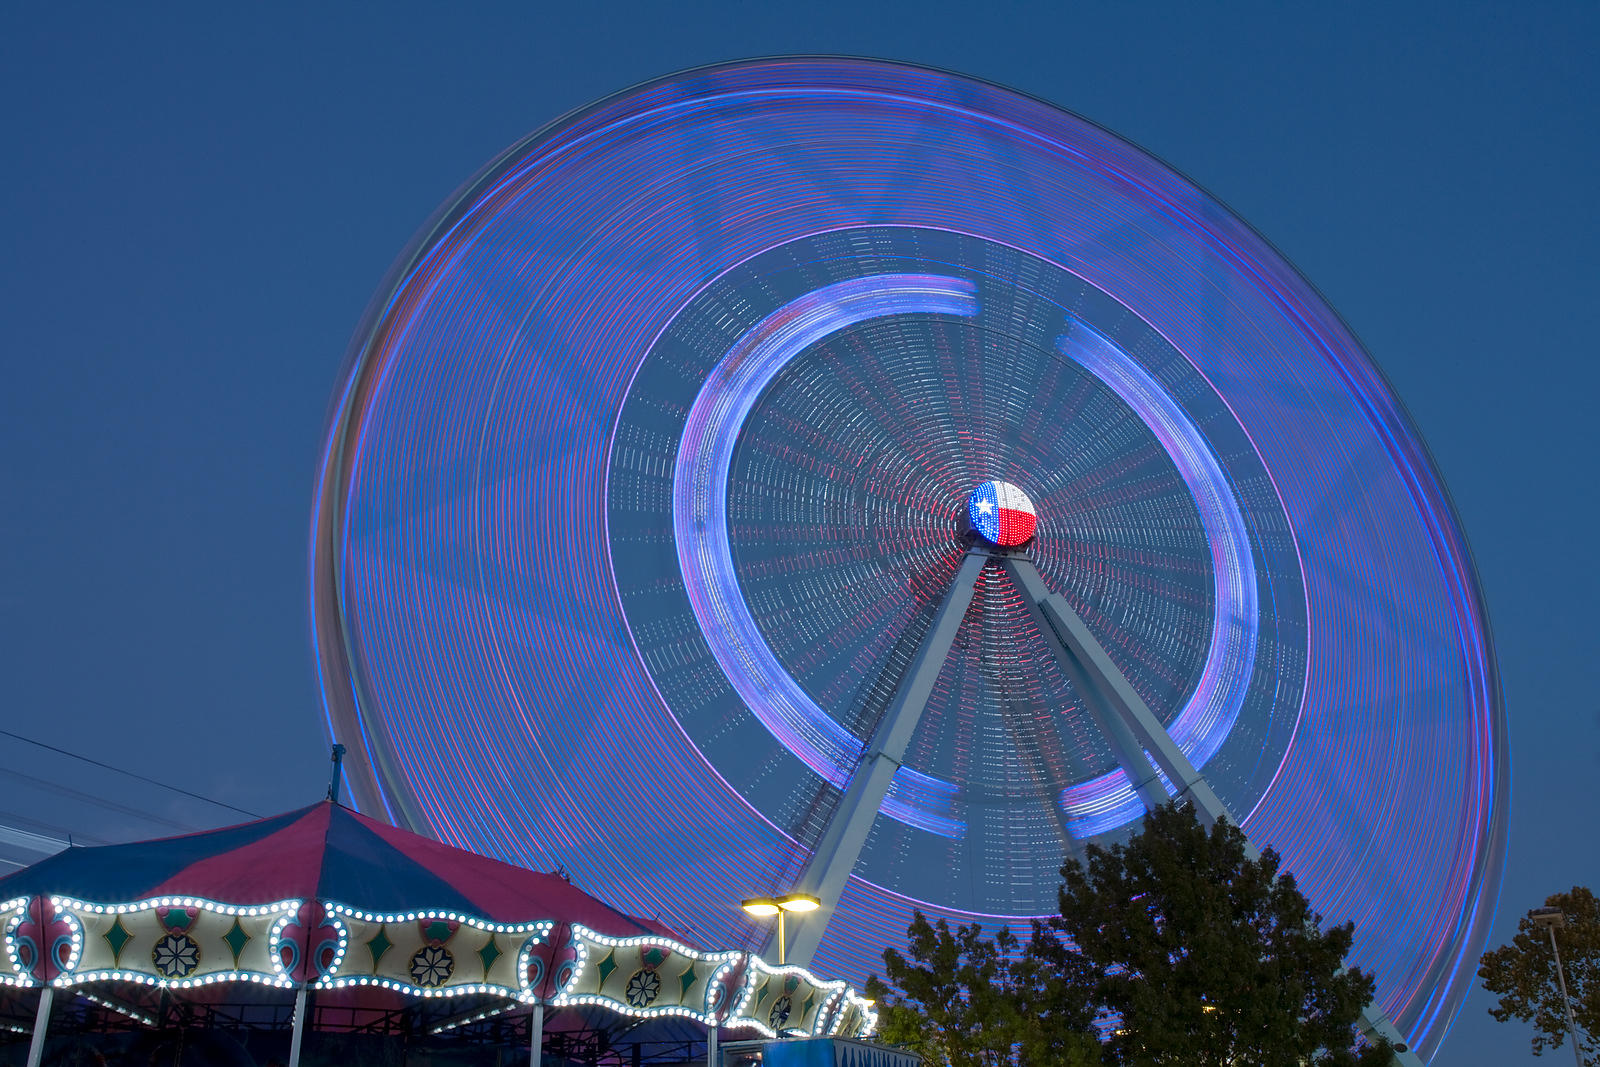 The Texas Star in Motion